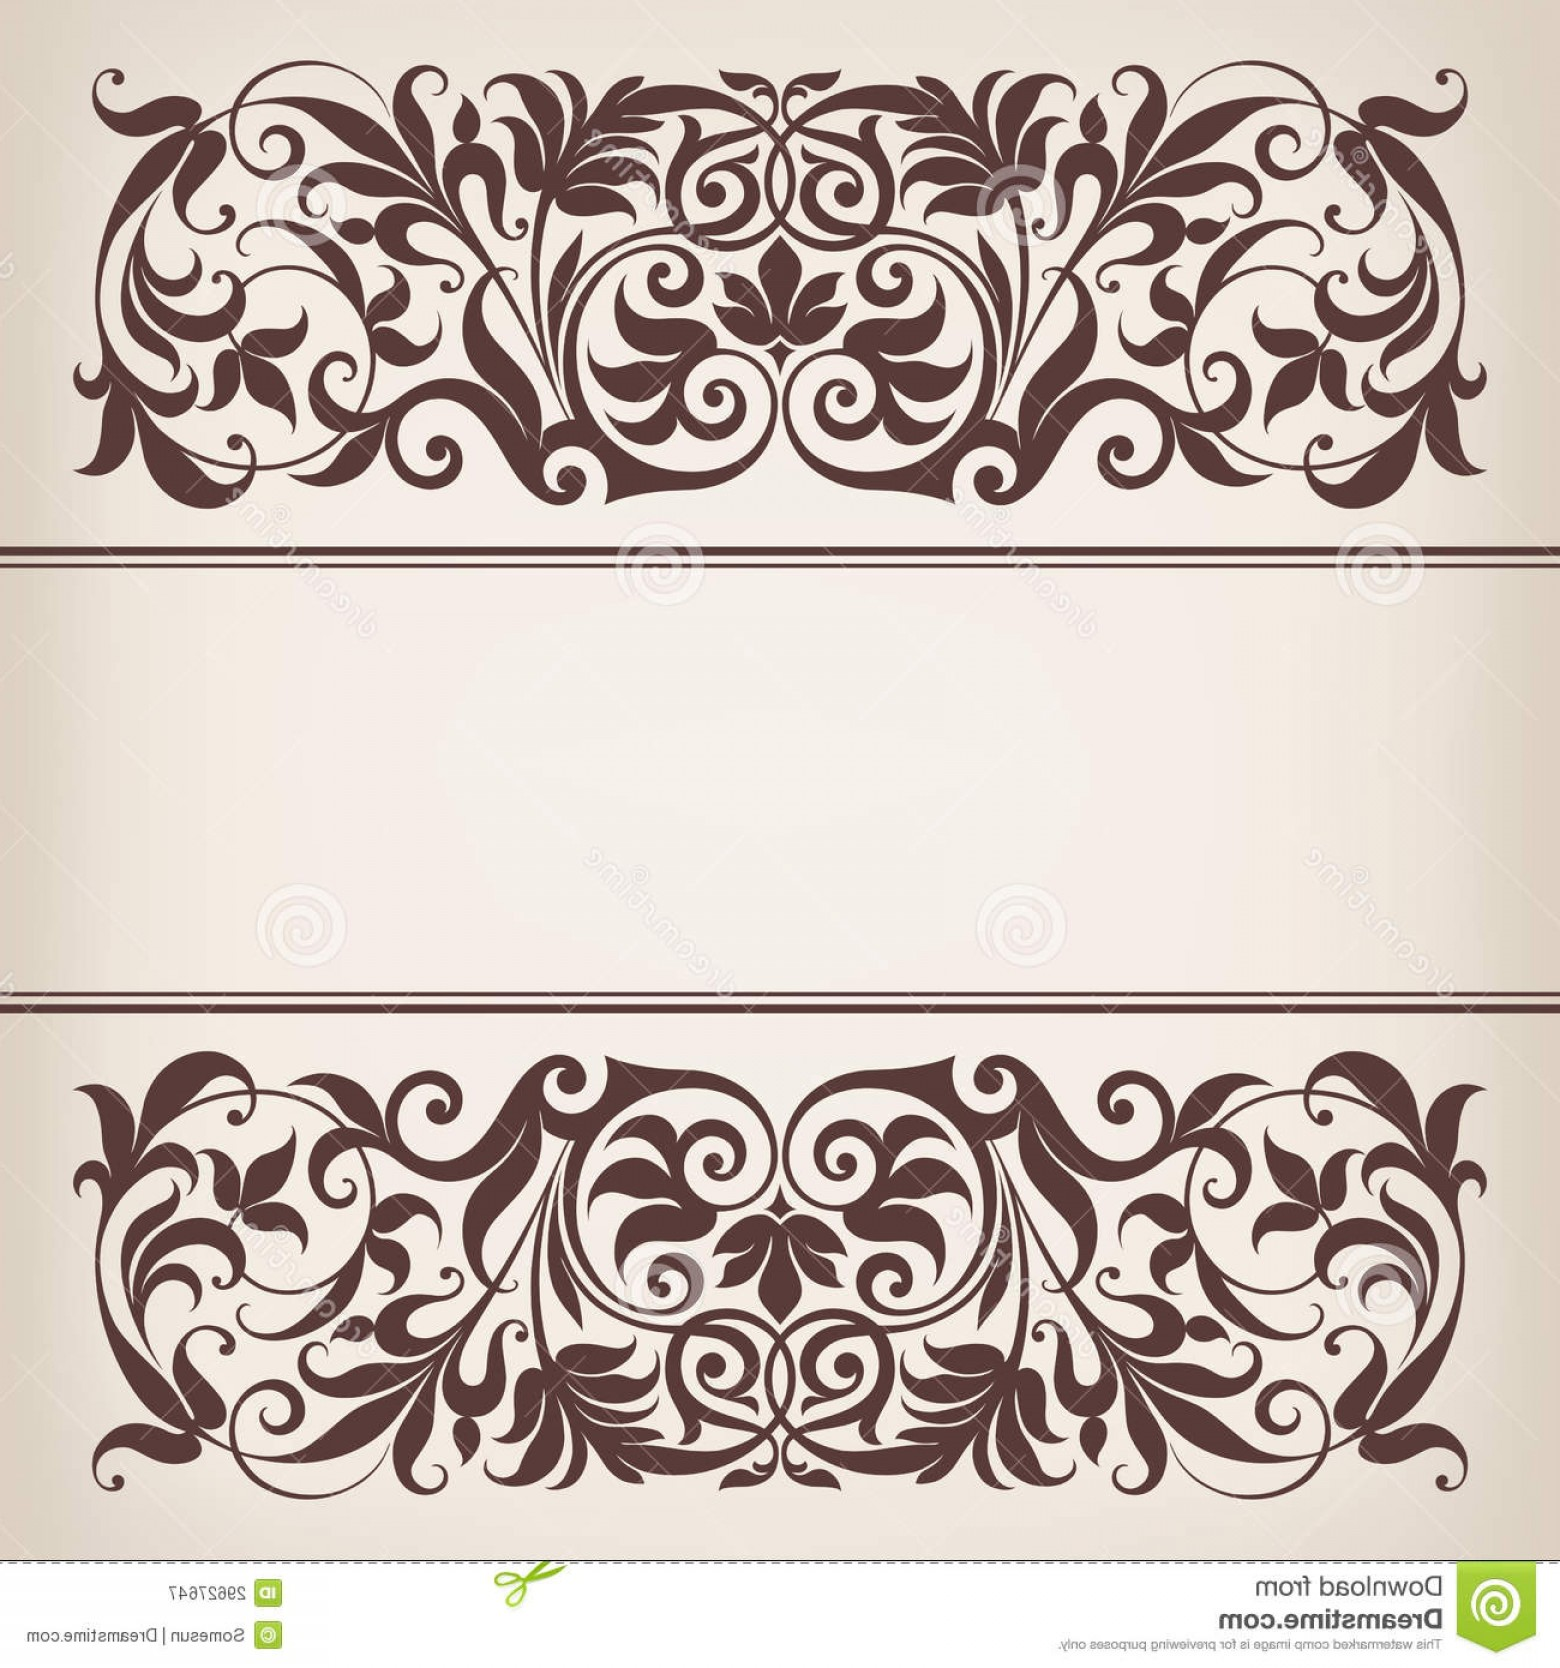 Vector Ornate Vintage Frame Blank: Royalty Free Stock Photography Vintage Border Frame Decorative Ornate Calligraphy Vector Image